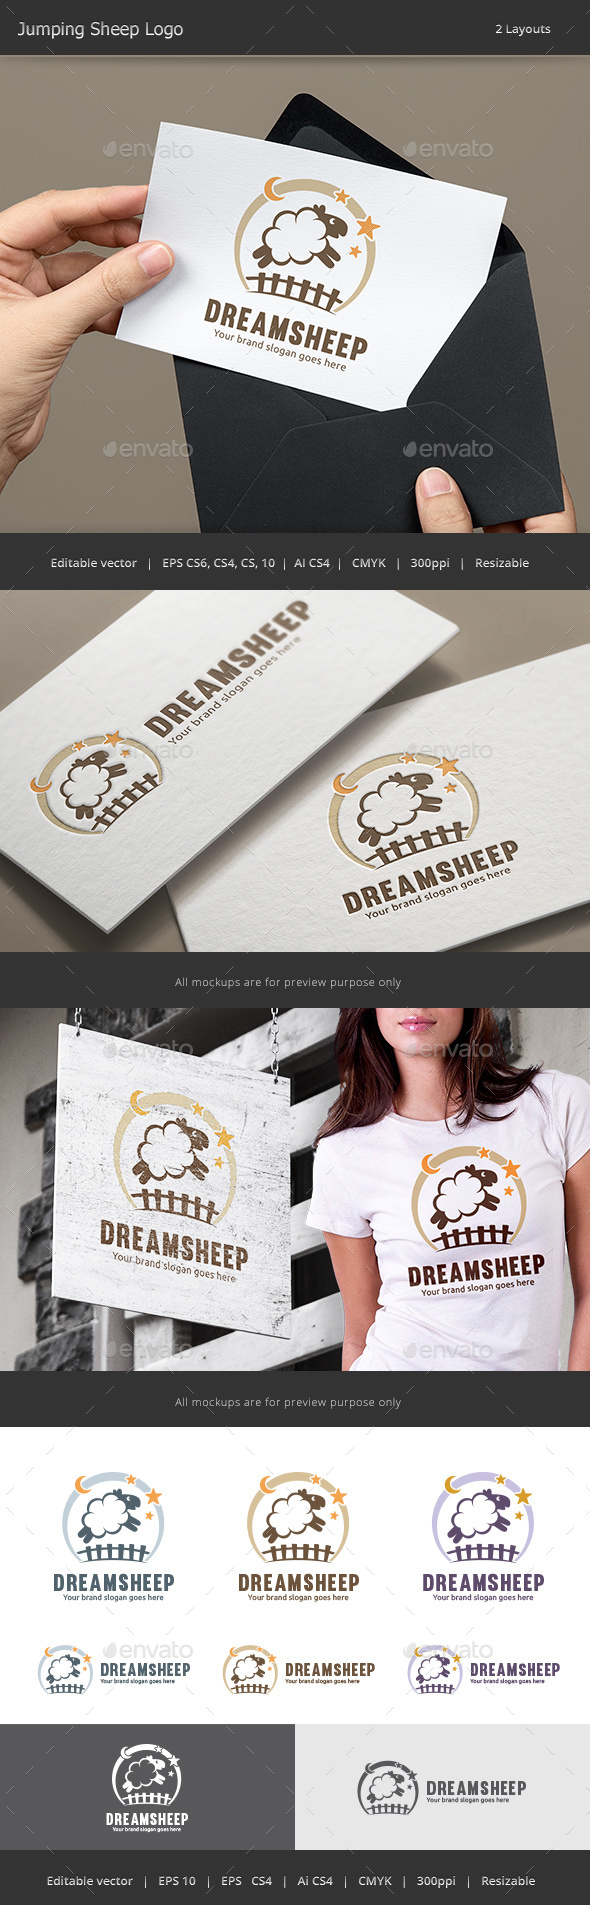 Jumping Sheep Logo - Animals Logo Templates